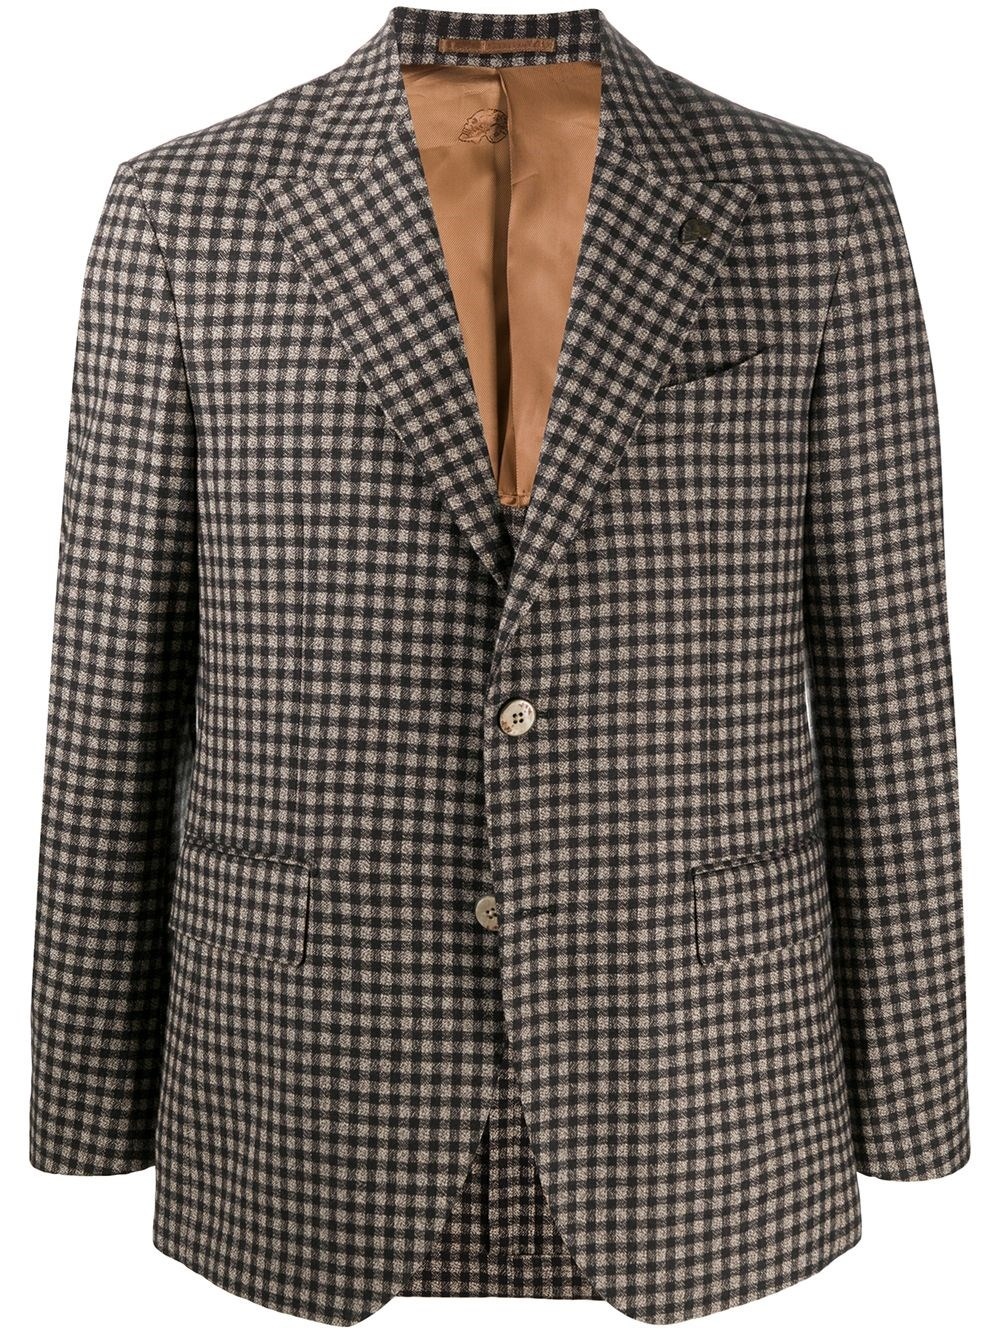 GABRIELE PASINI Check Print Tailored Blazer